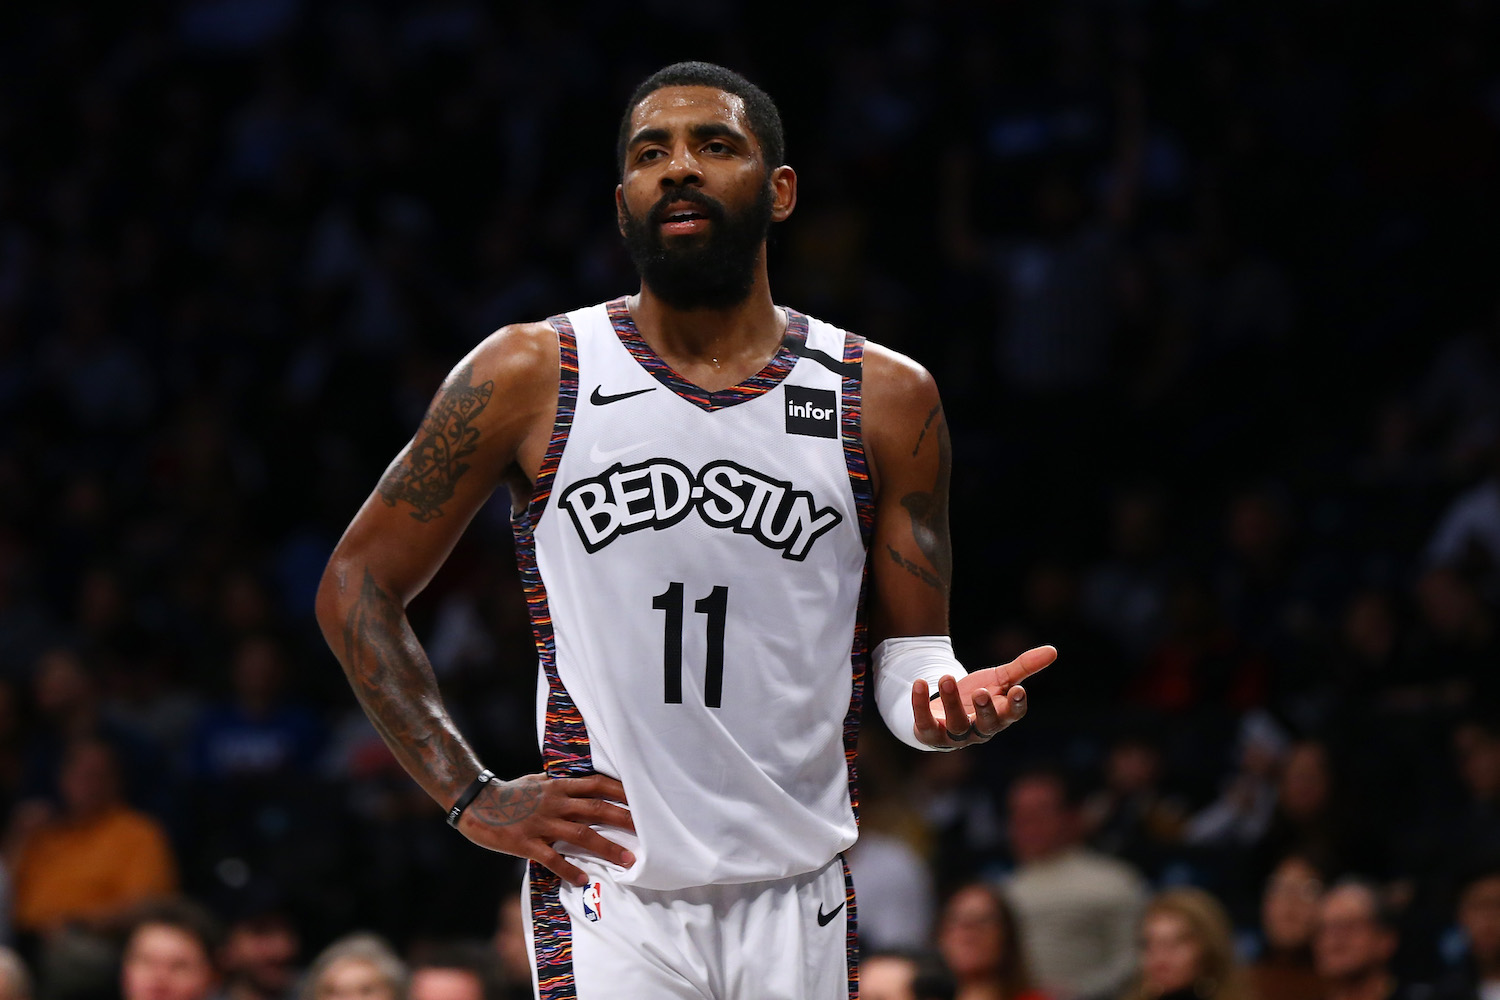 Kyrie Irving confused during game